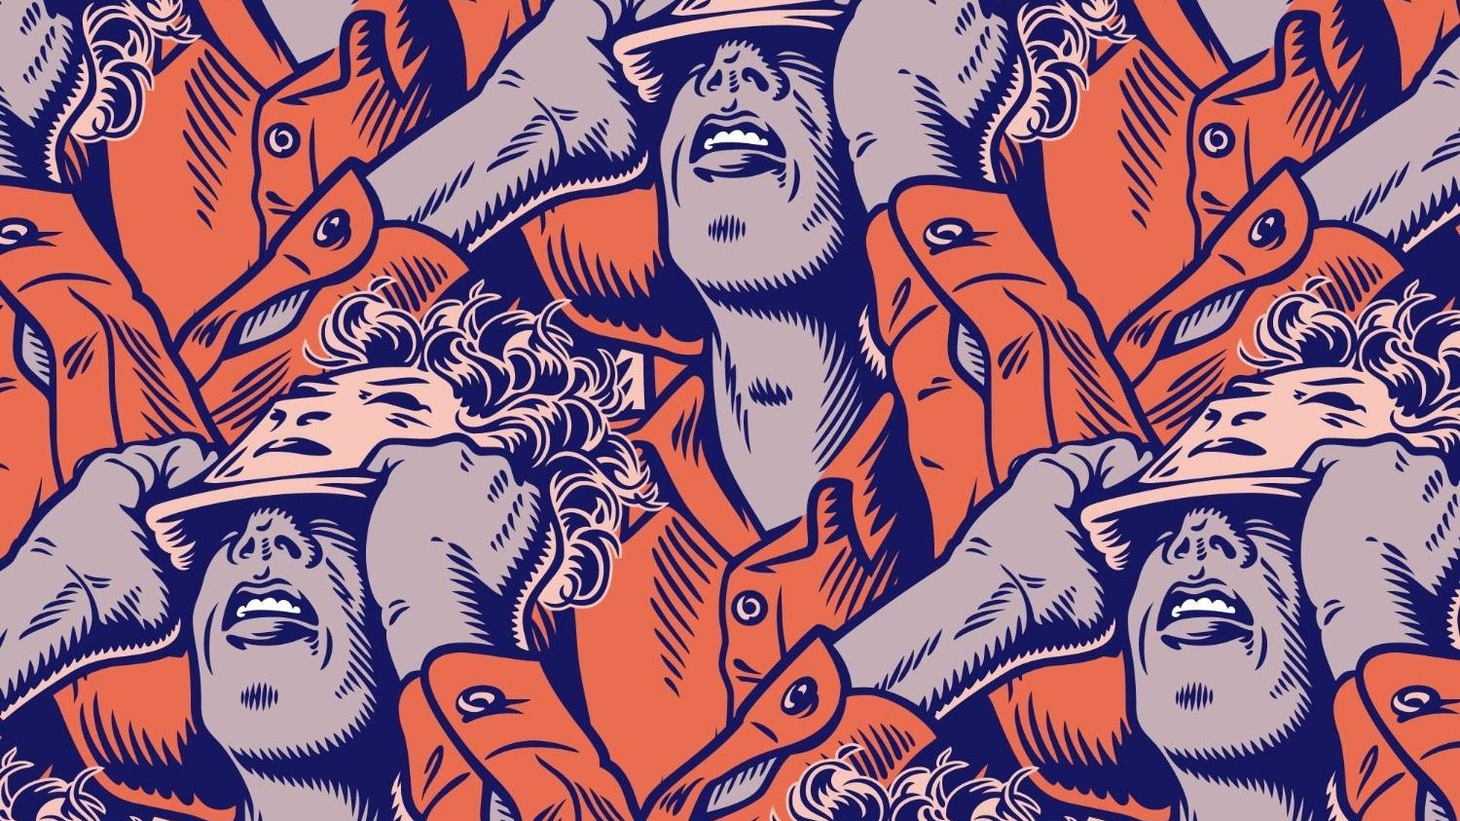 Moderat's II, like their first record, blends the best of two giants in electronic music into something both brawny and graceful.